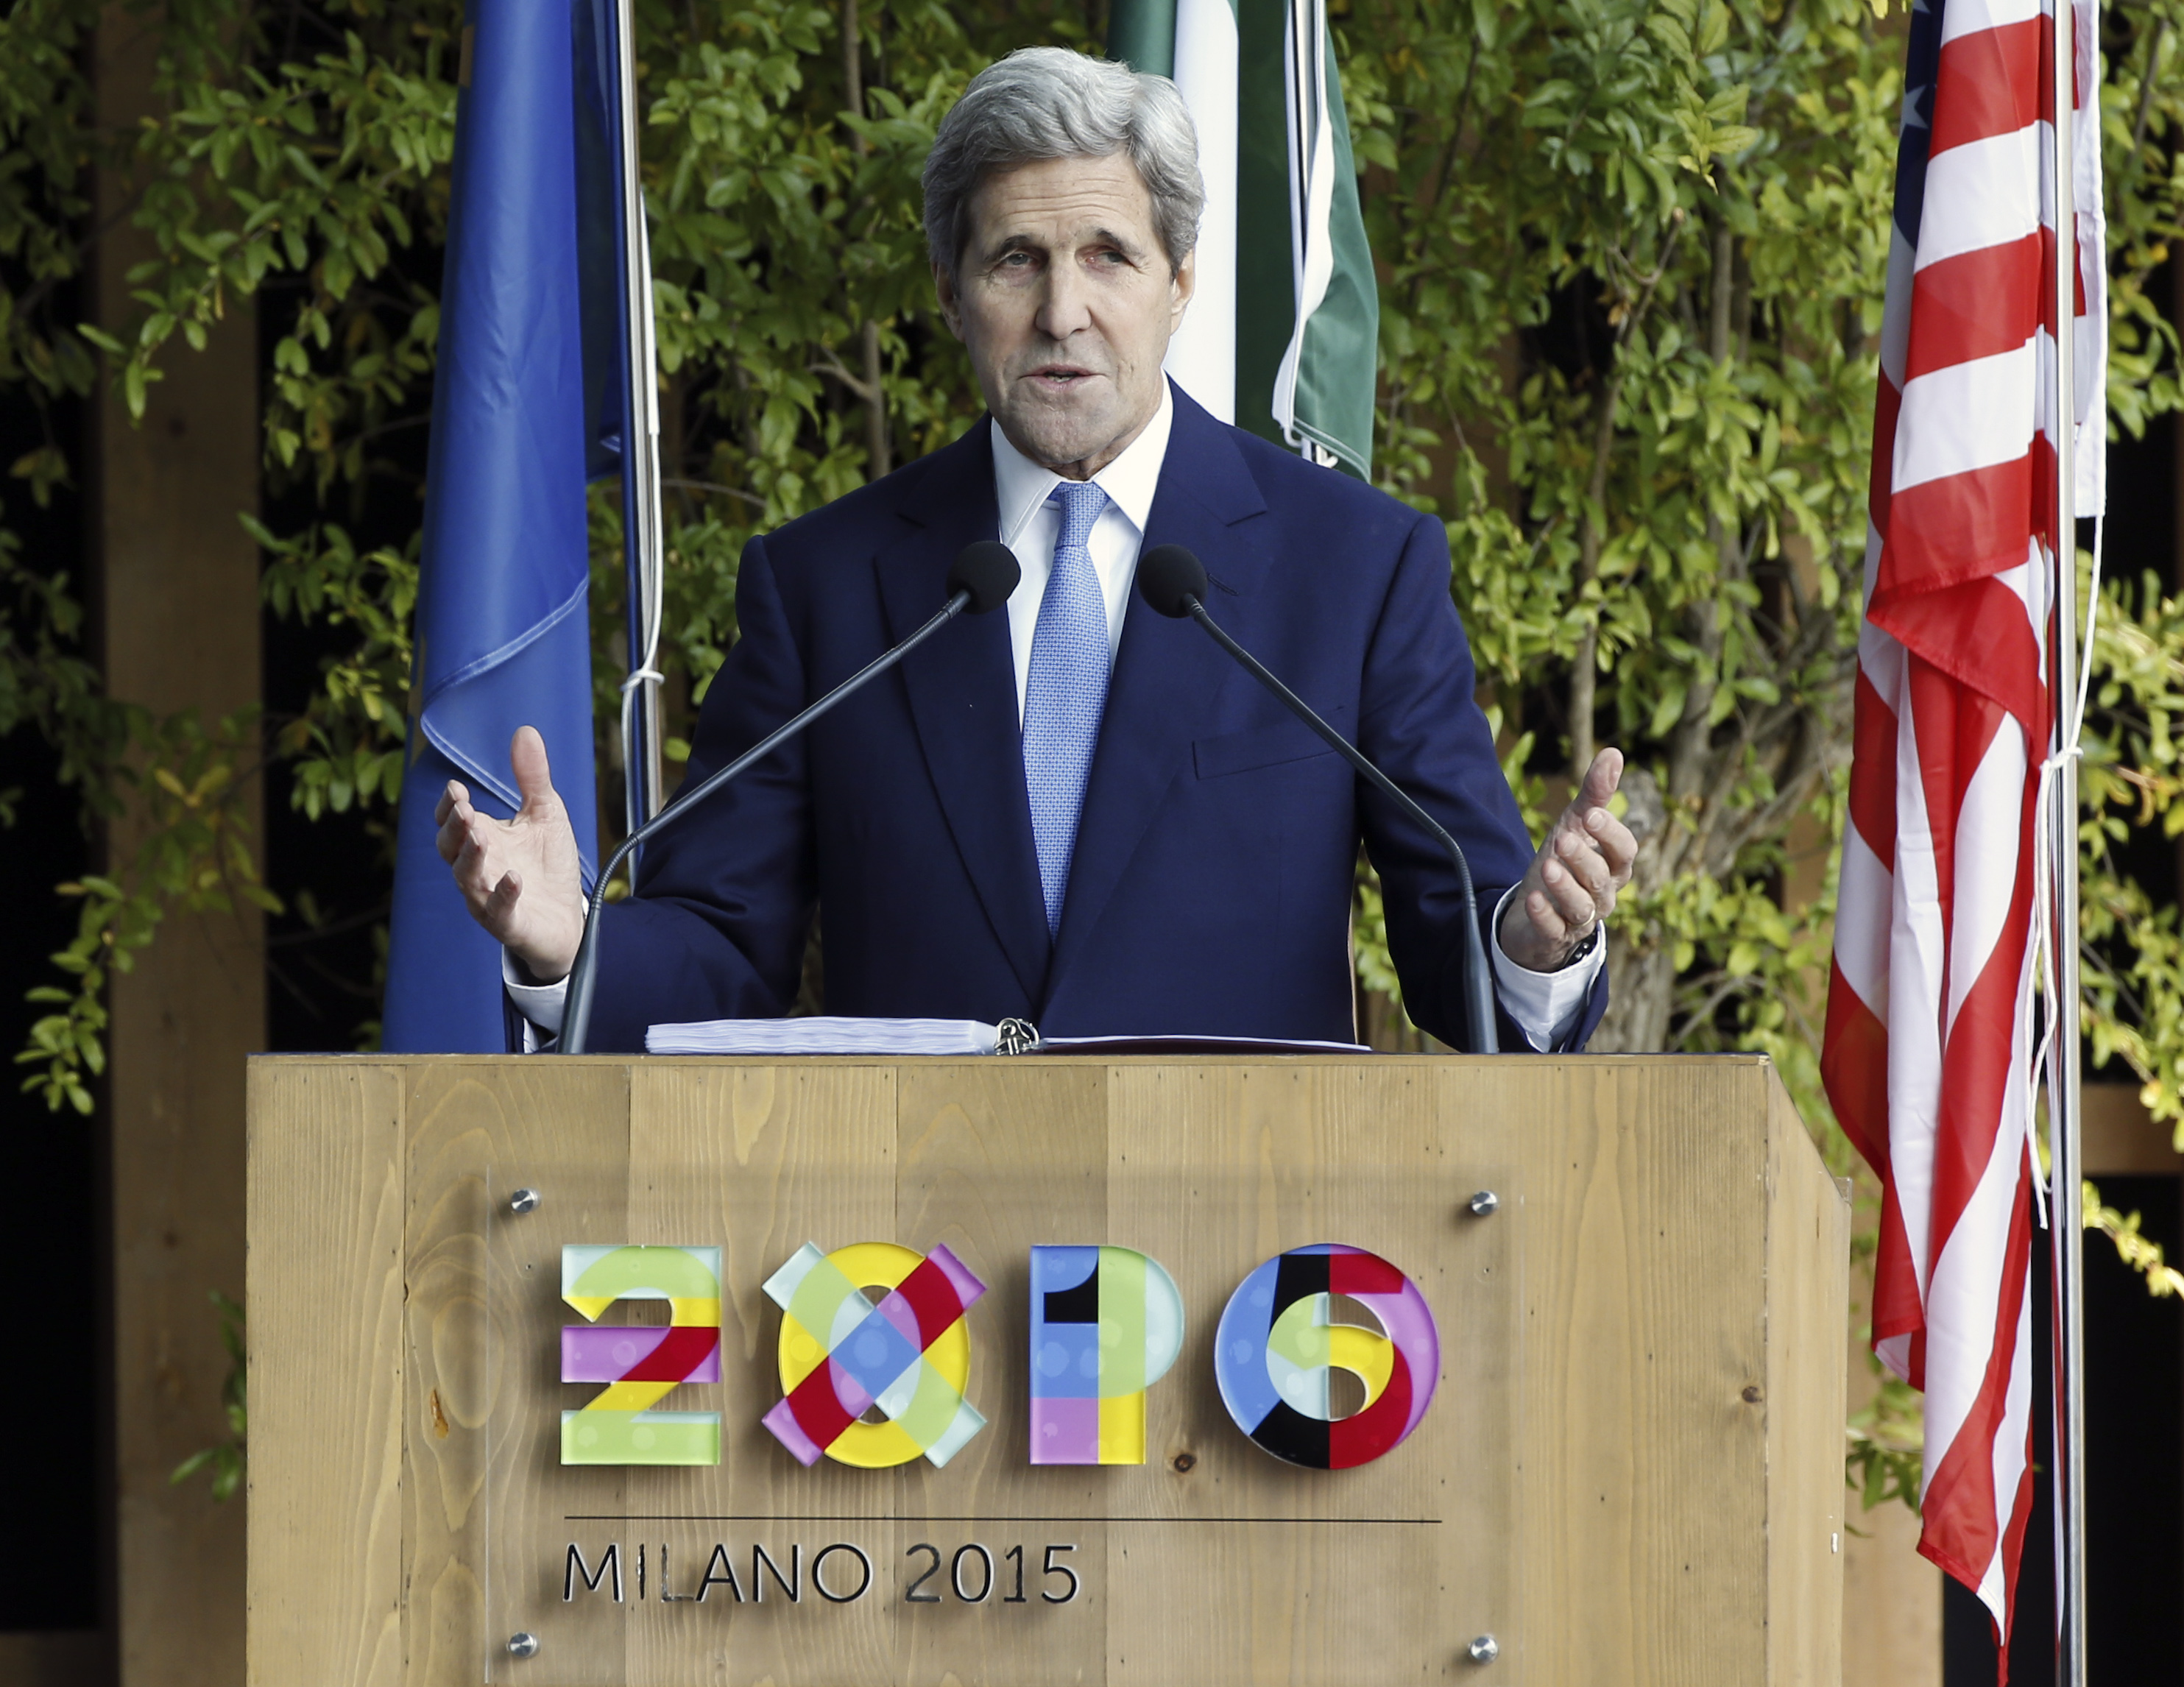 US Secretary of State John Kerry speaks at the Expo World's Fair taking place in Milan, Italy, Saturday, Oct. 17, 2015. (AP Photo/Luca Bruno)